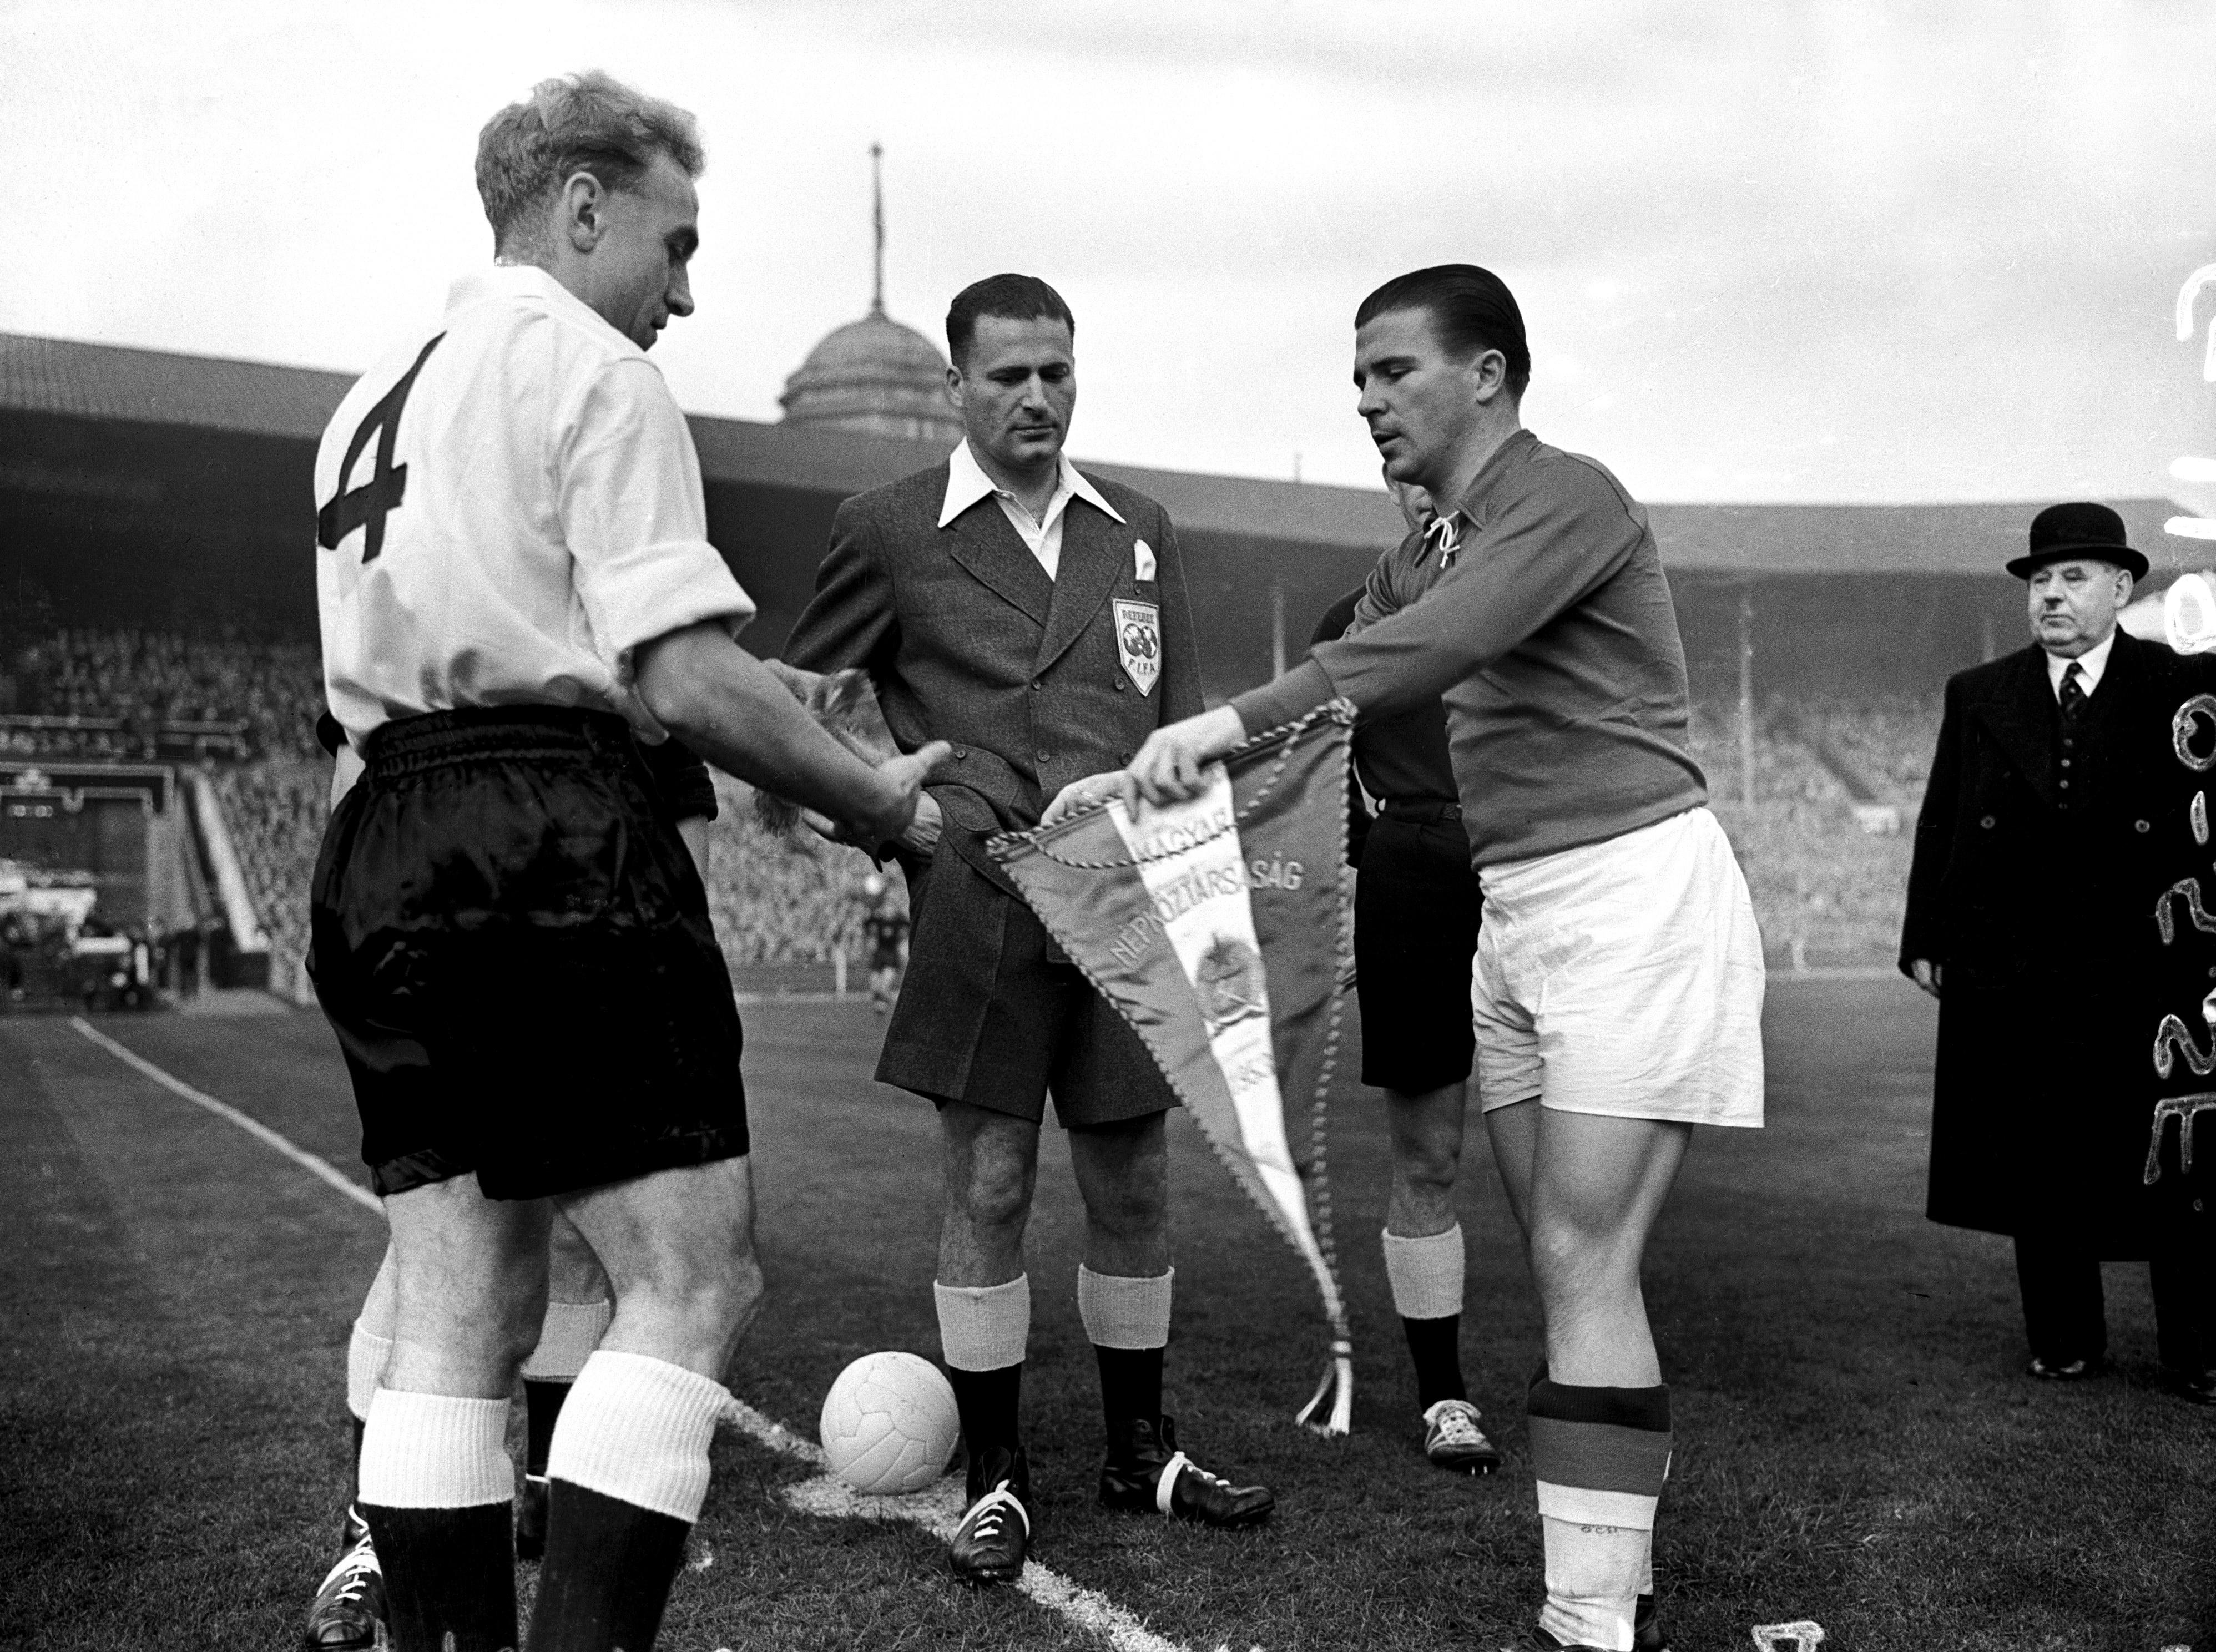 Pennants exchange before the match England vs West Germany played in 1953